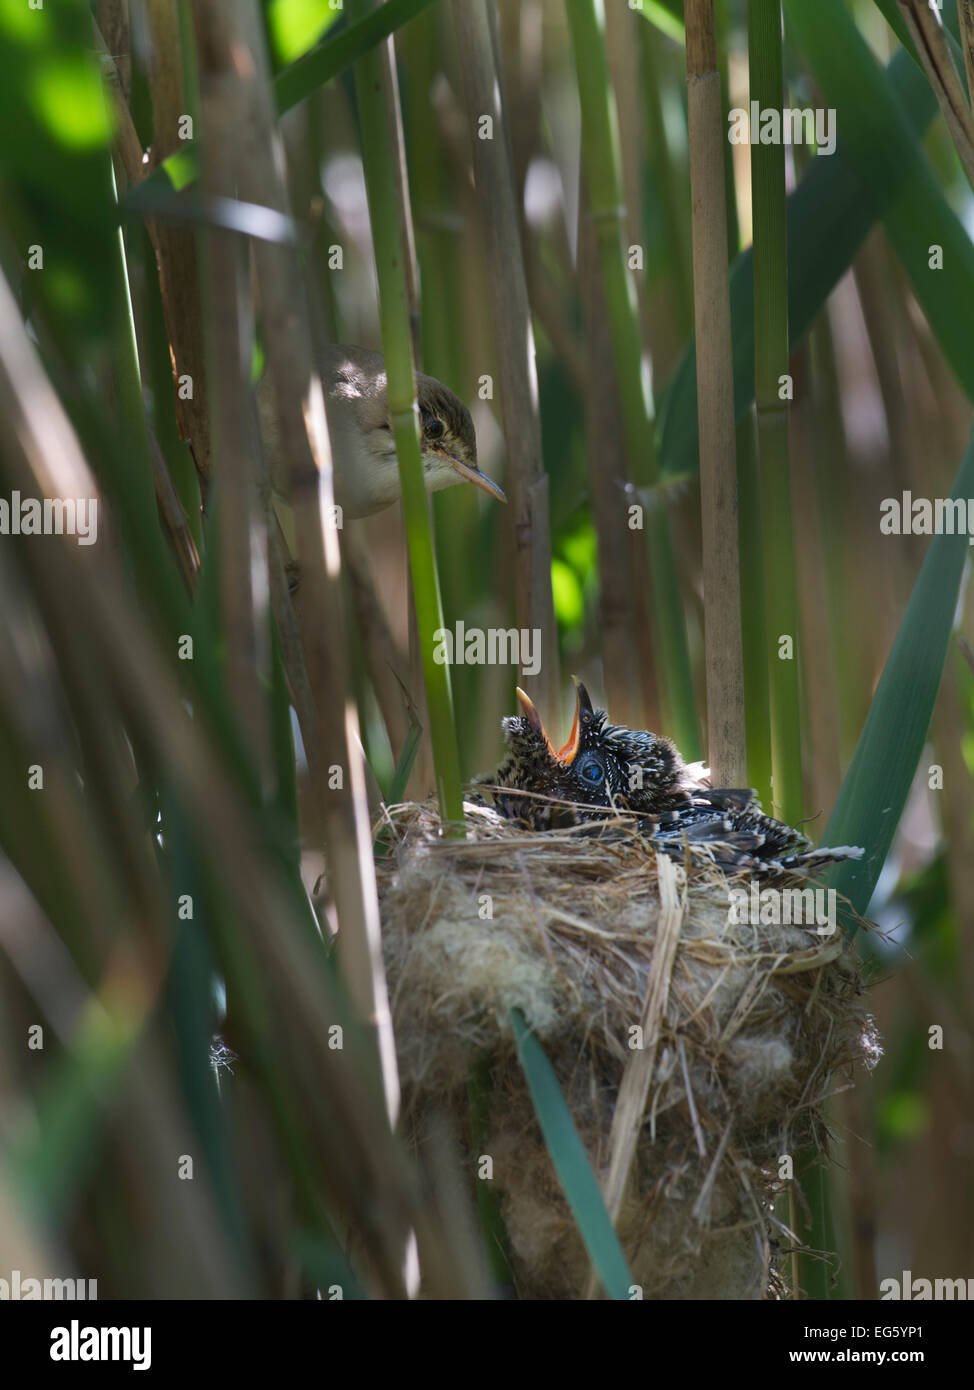 Reed Warbler (Acrocephalus scirpaceus) at nest feeding 12 day Cuckoo chick (Cuculus canorus), Fenland, Norfolk, - Stock Image